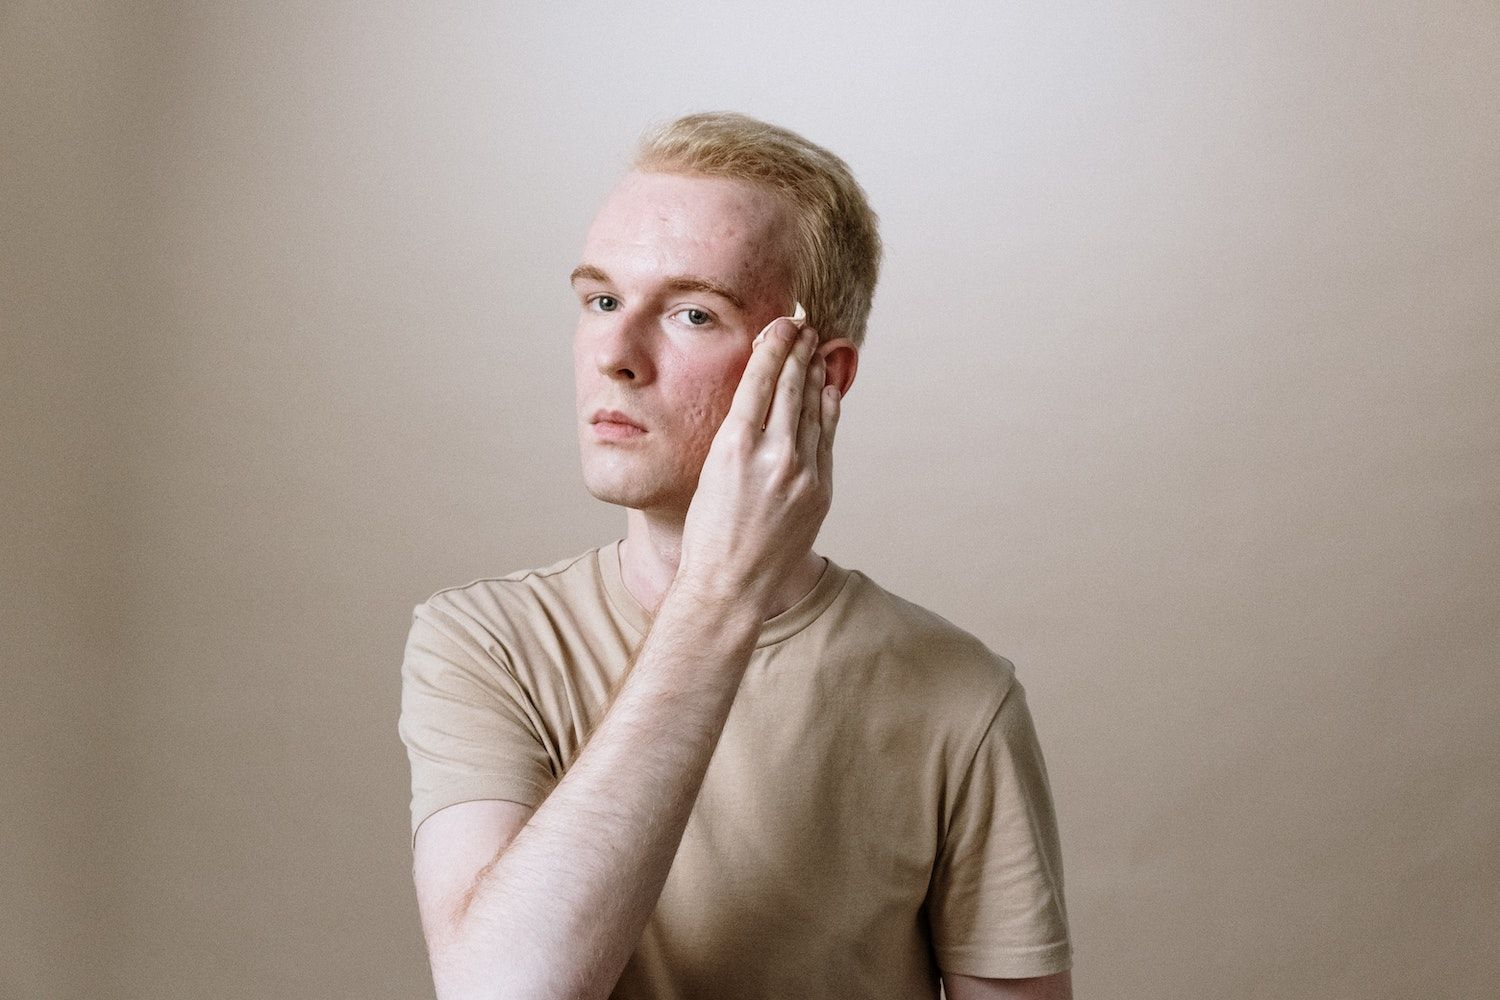 Mental health support recommended for those struggling with acne